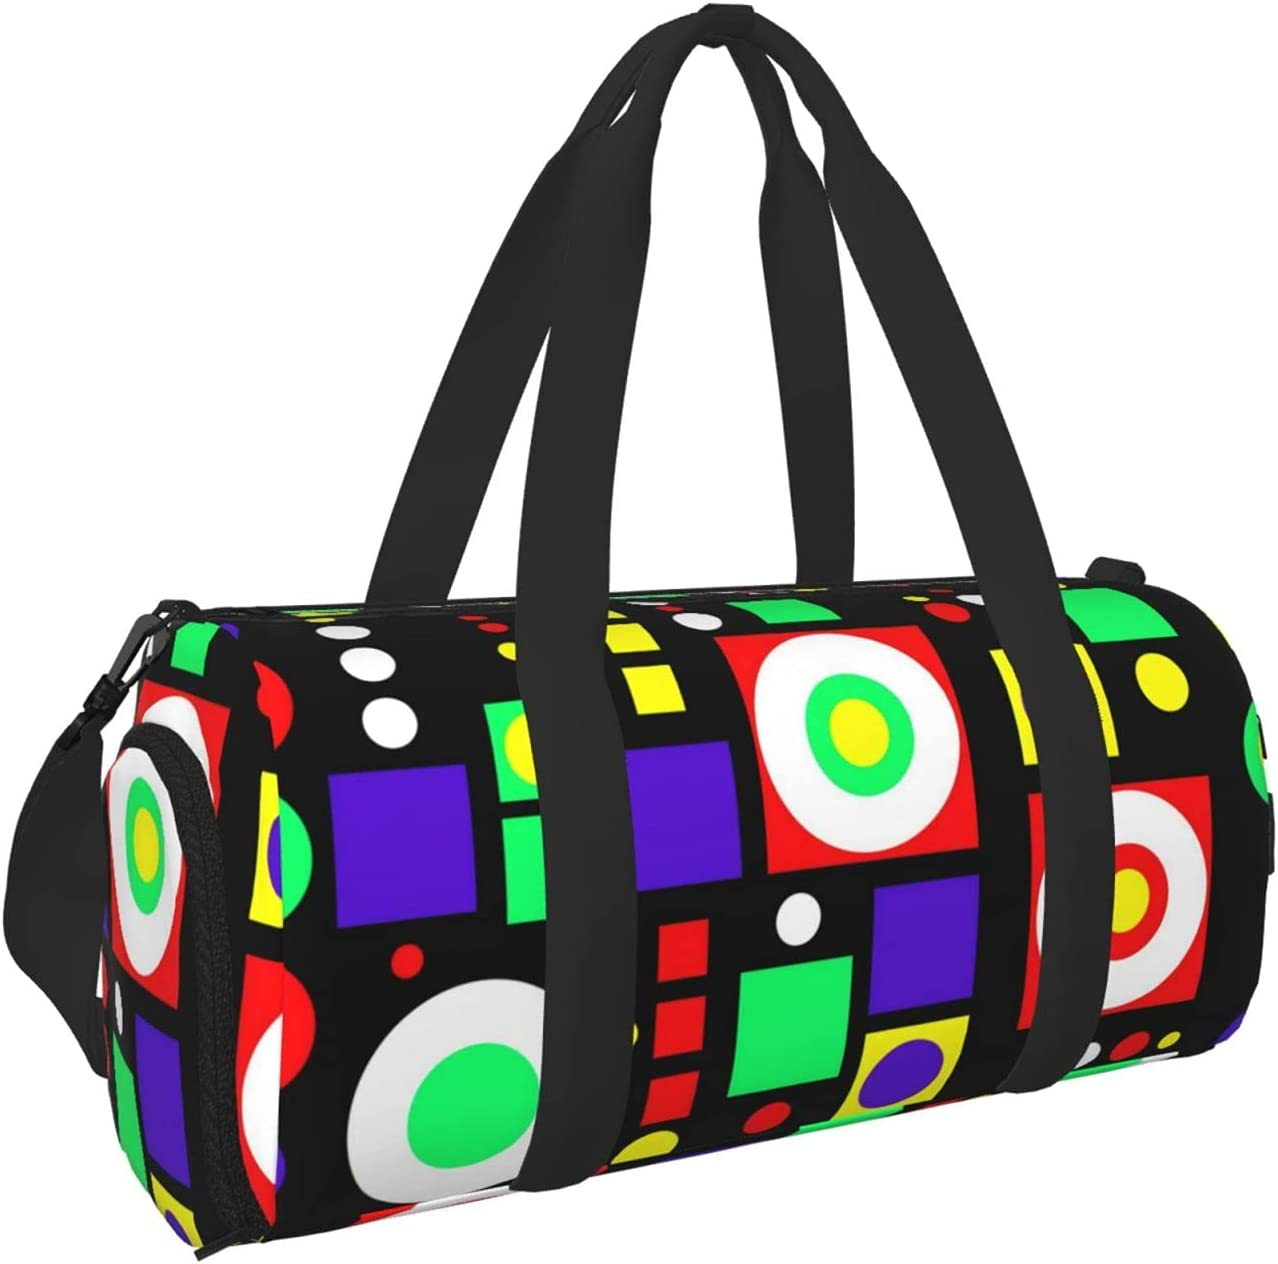 Ranking TOP15 Vjkrm Multicolor Indefinitely Pattern Series Sports Gym Travel Bag Duffel